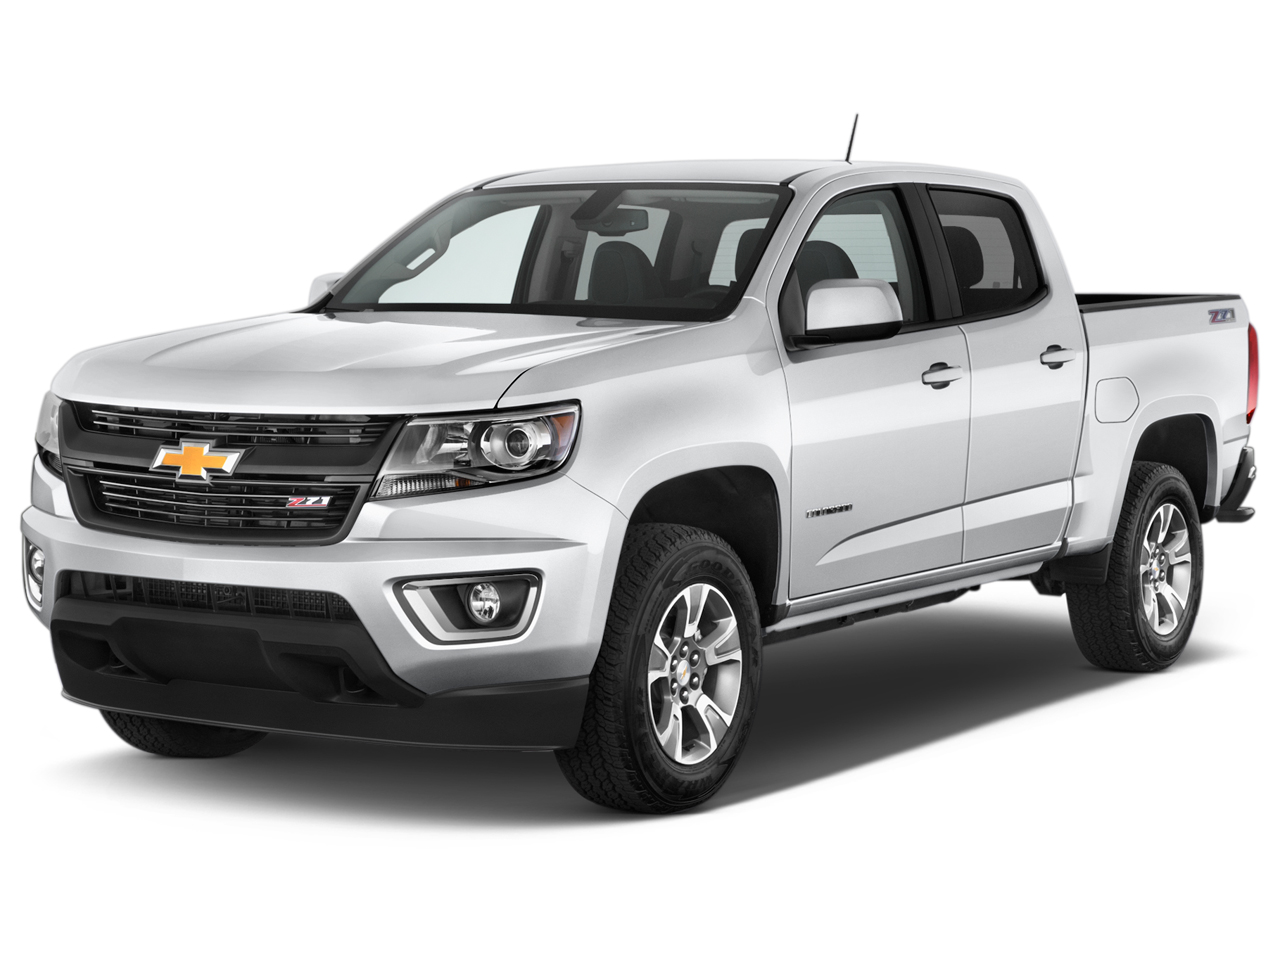 Chevy Colorado Accessories >> Chevrolet Colorado Accessories Autoeq Ca Canadian Auto